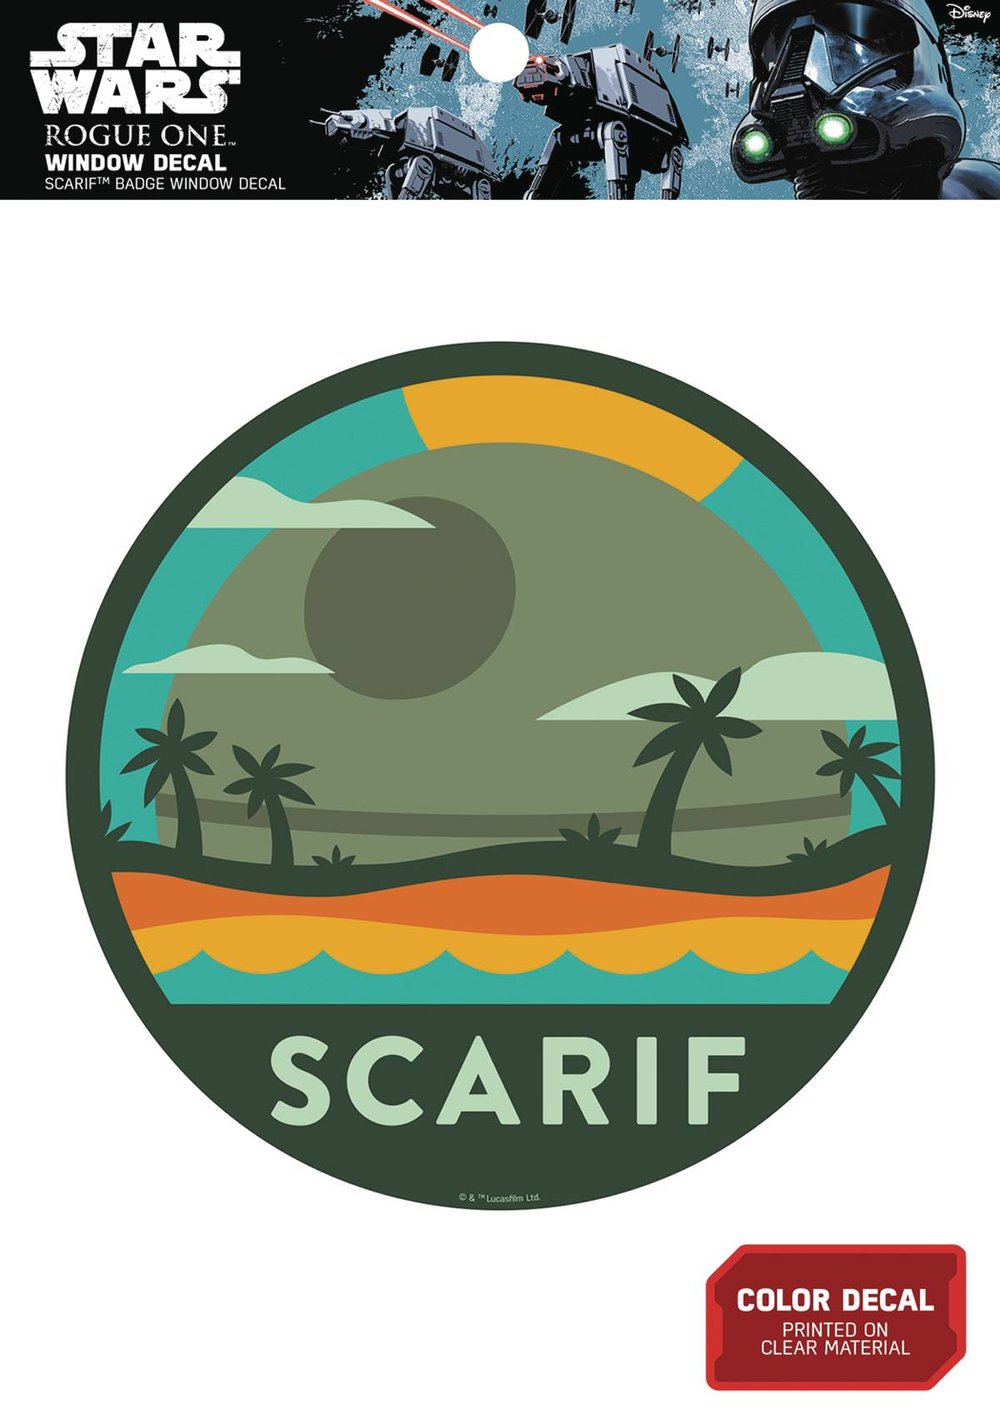 STAR WARS DEATH STAR OVER SCARIF BADGE WINDOW DECAL.jpg